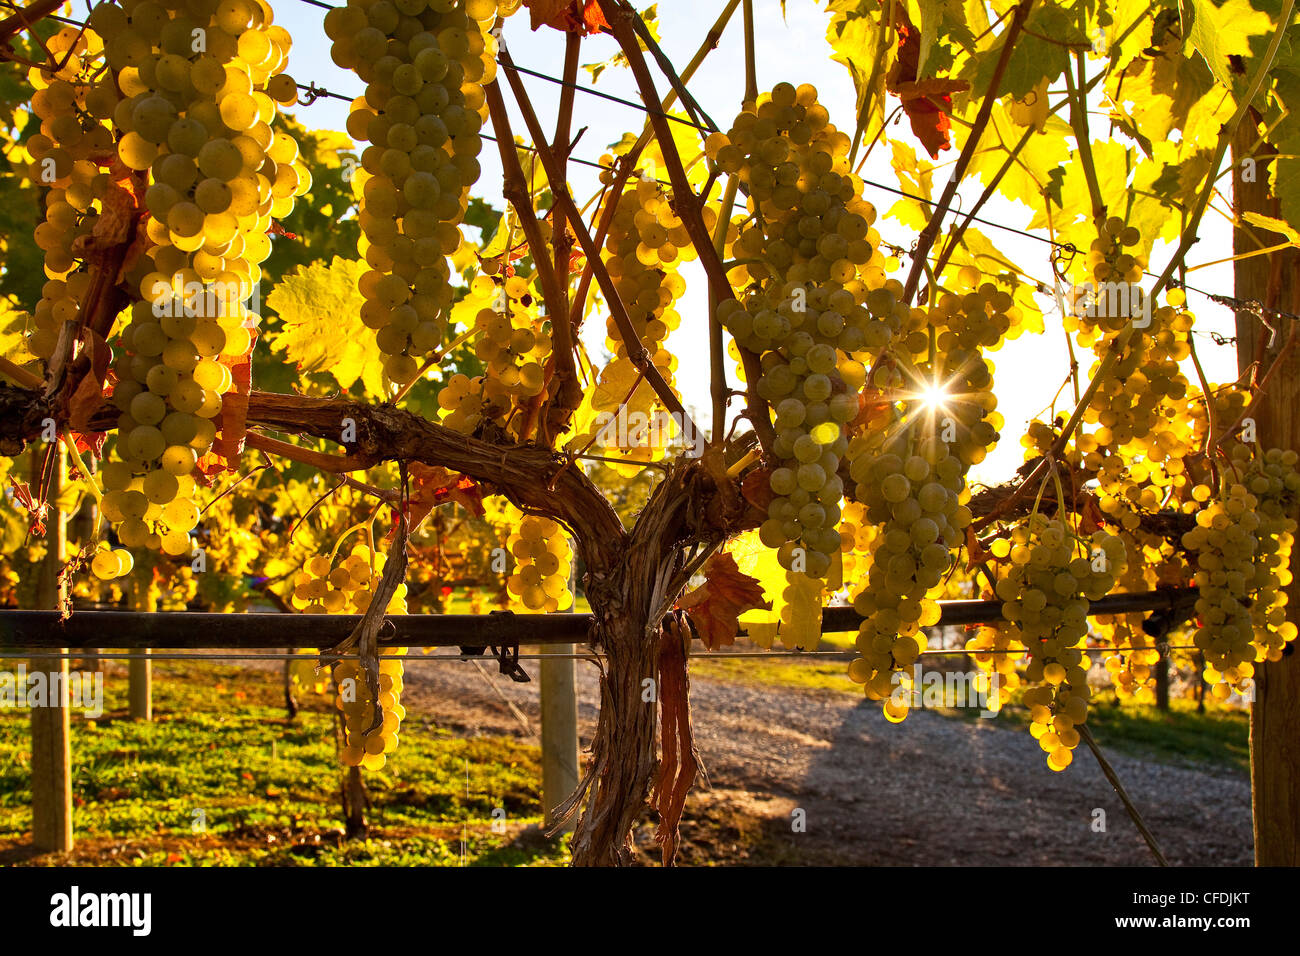 Riesling Grapes on vine at Arrowleaf Winery, Okanagan Valley, British Columbia, Canada. - Stock Image